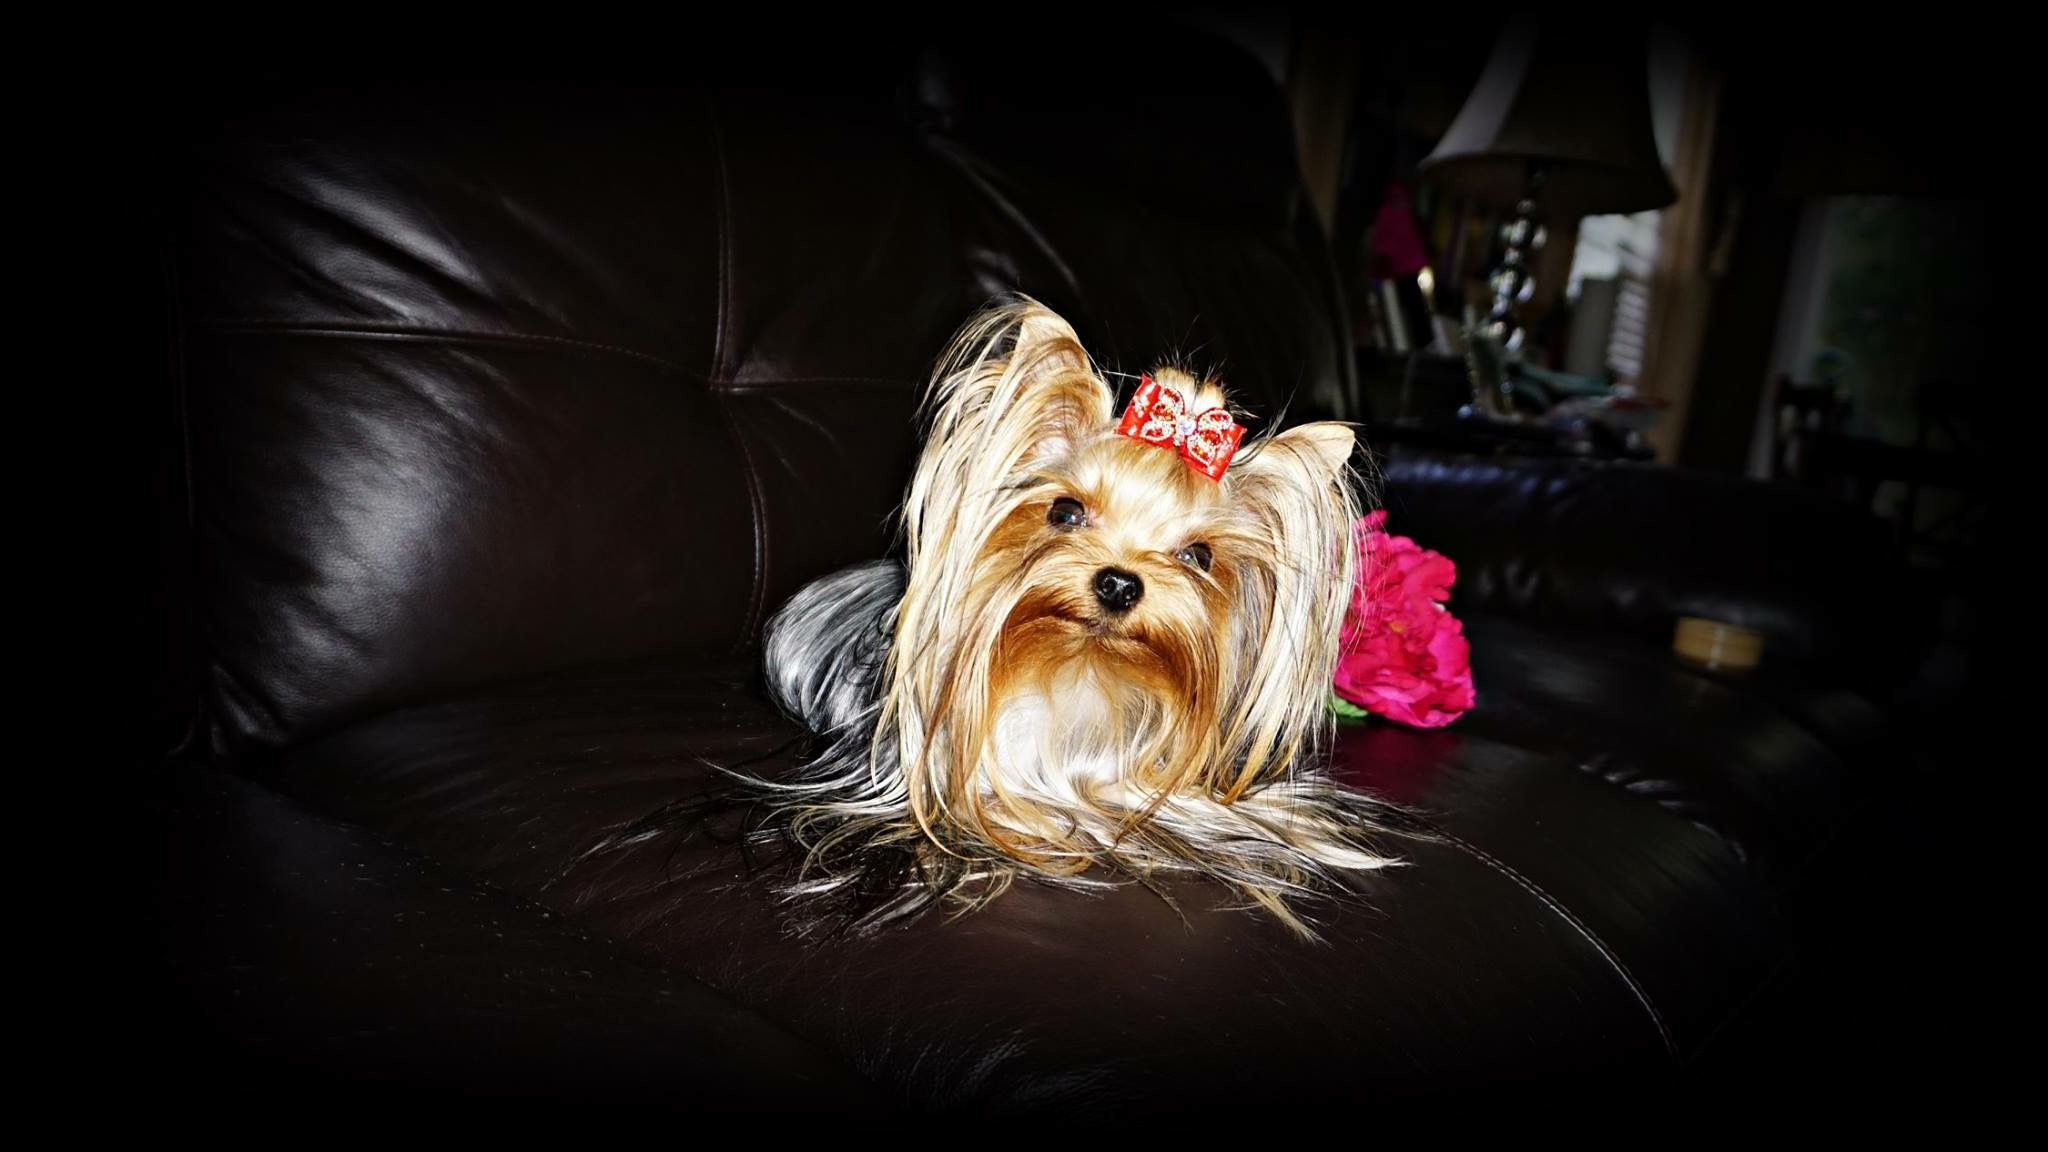 Pin By Priceless Yorkie Puppy On Priceless Yorkie Puppy Yorkie Lover Yorkie Lovers Yorkie Puppy Puppies